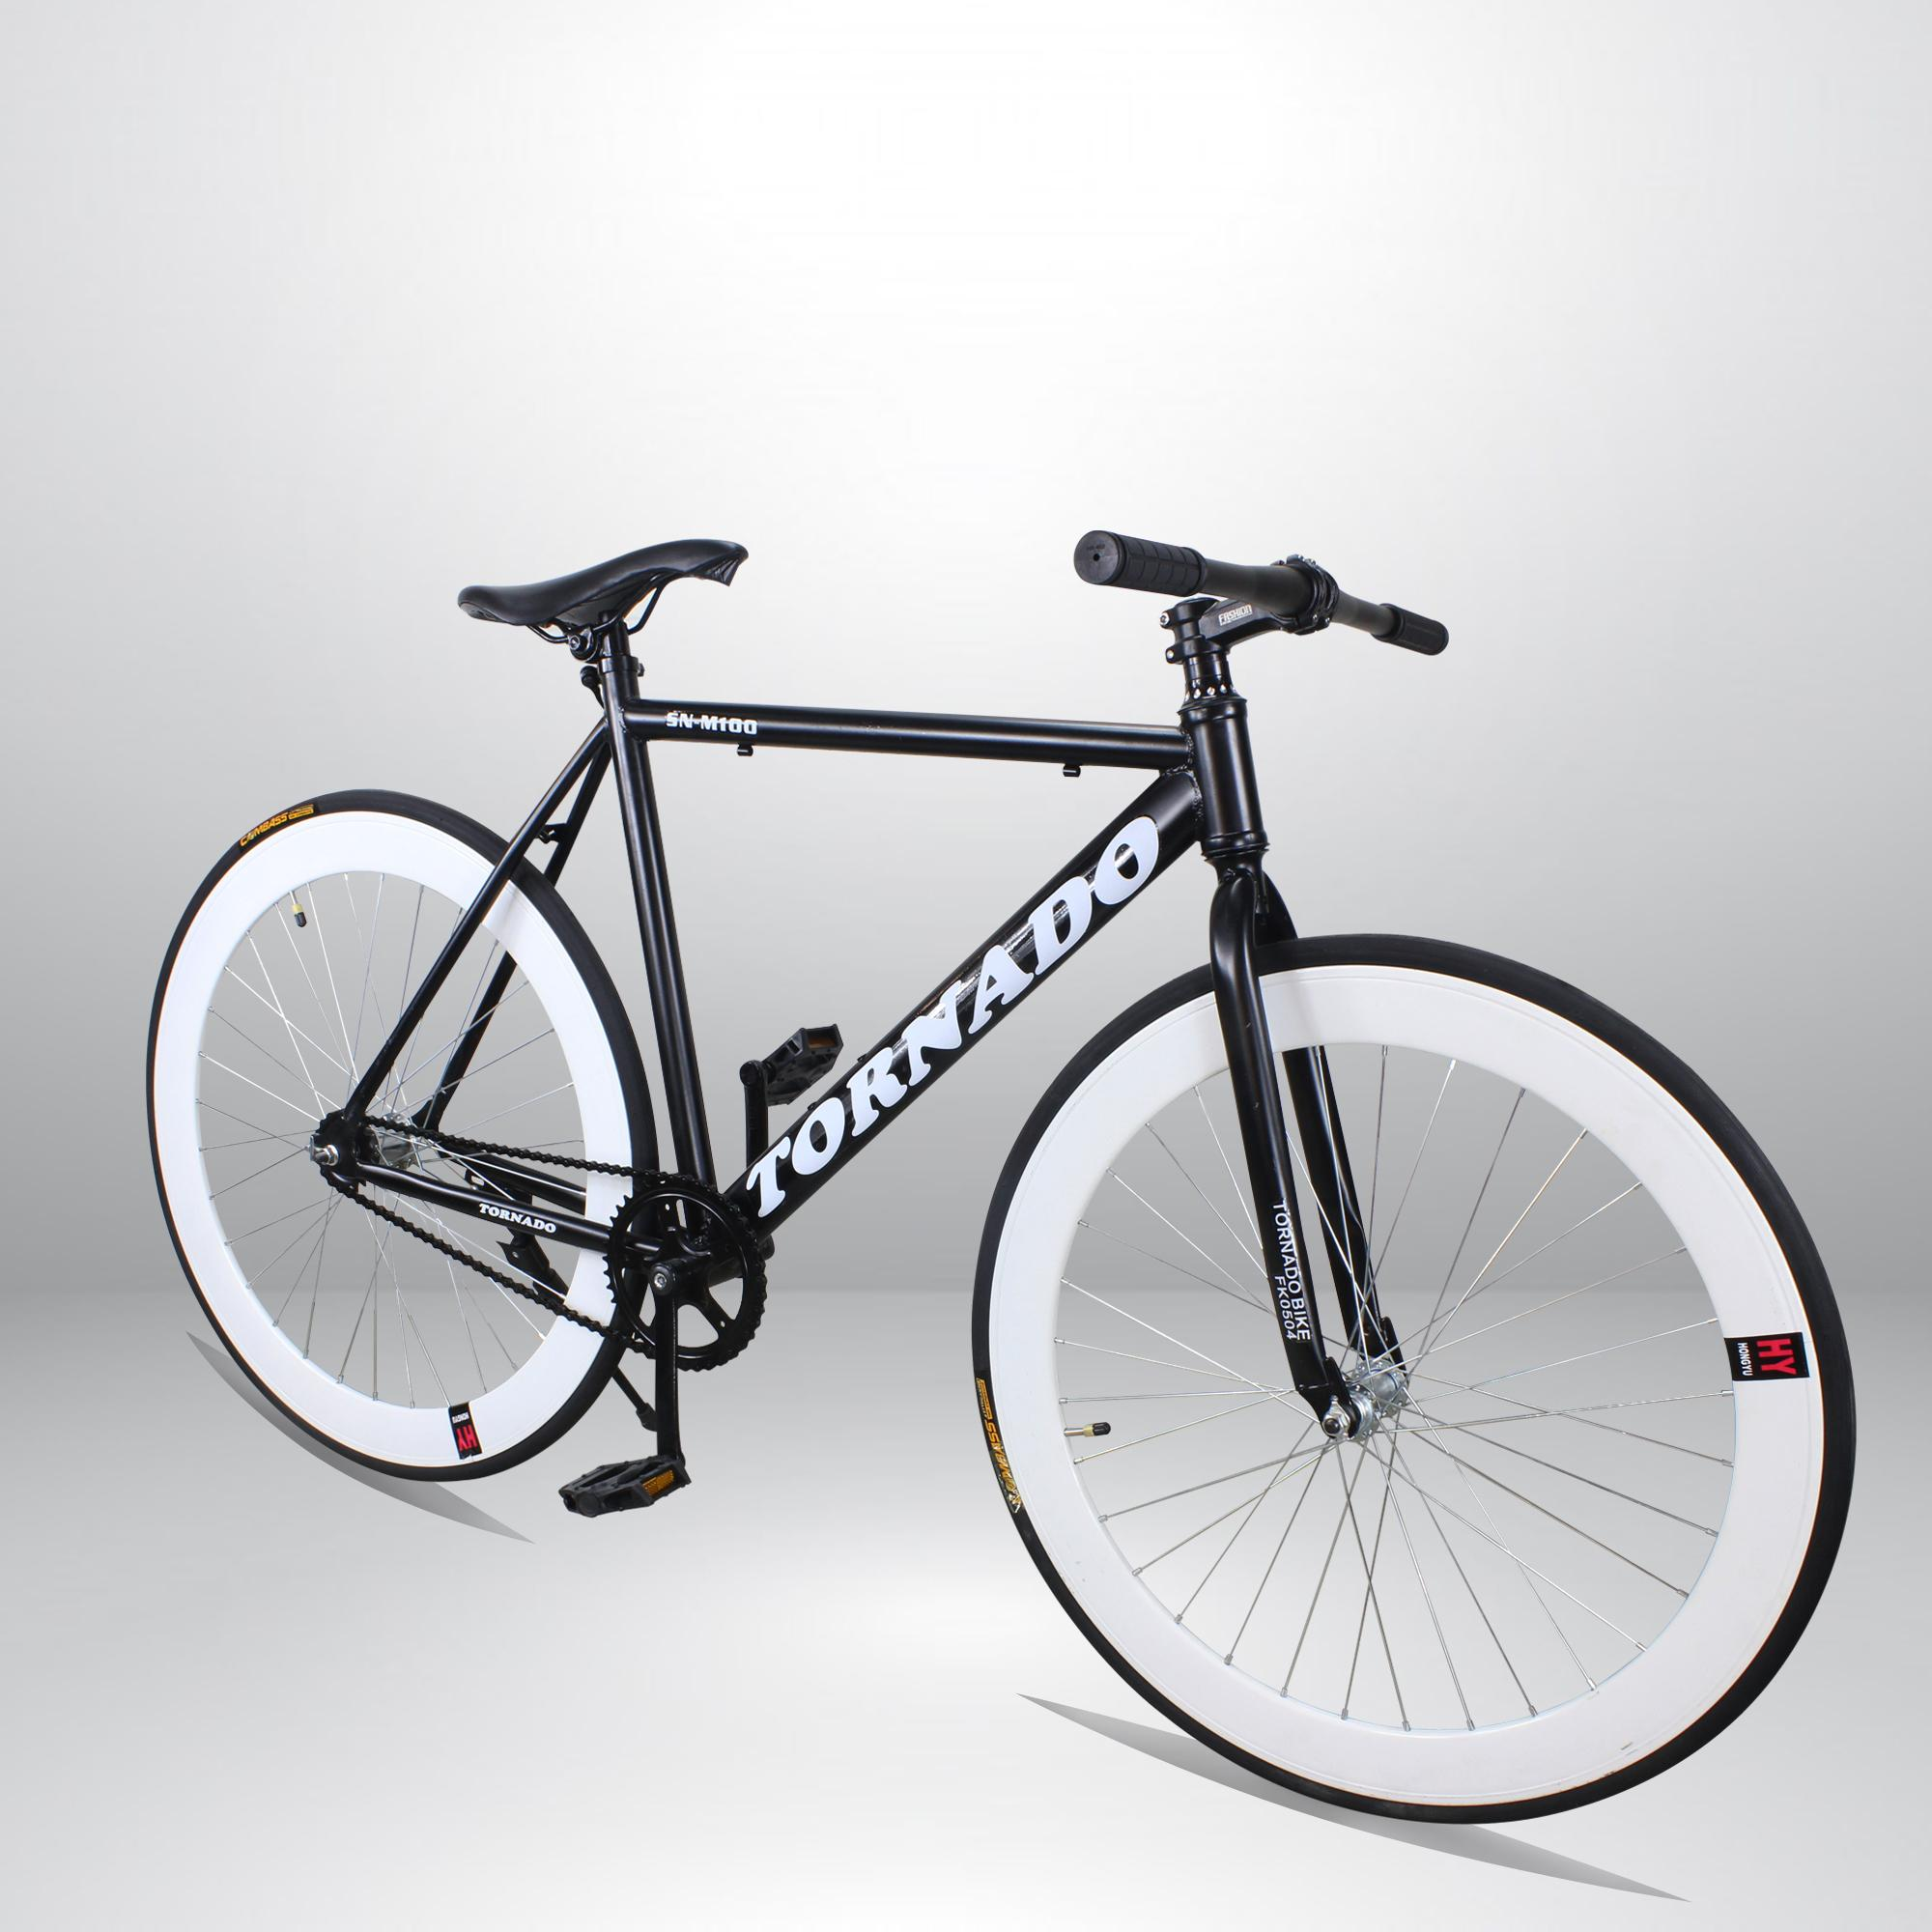 Racing Bike for sale - Road Bikes Online Deals & Prices in